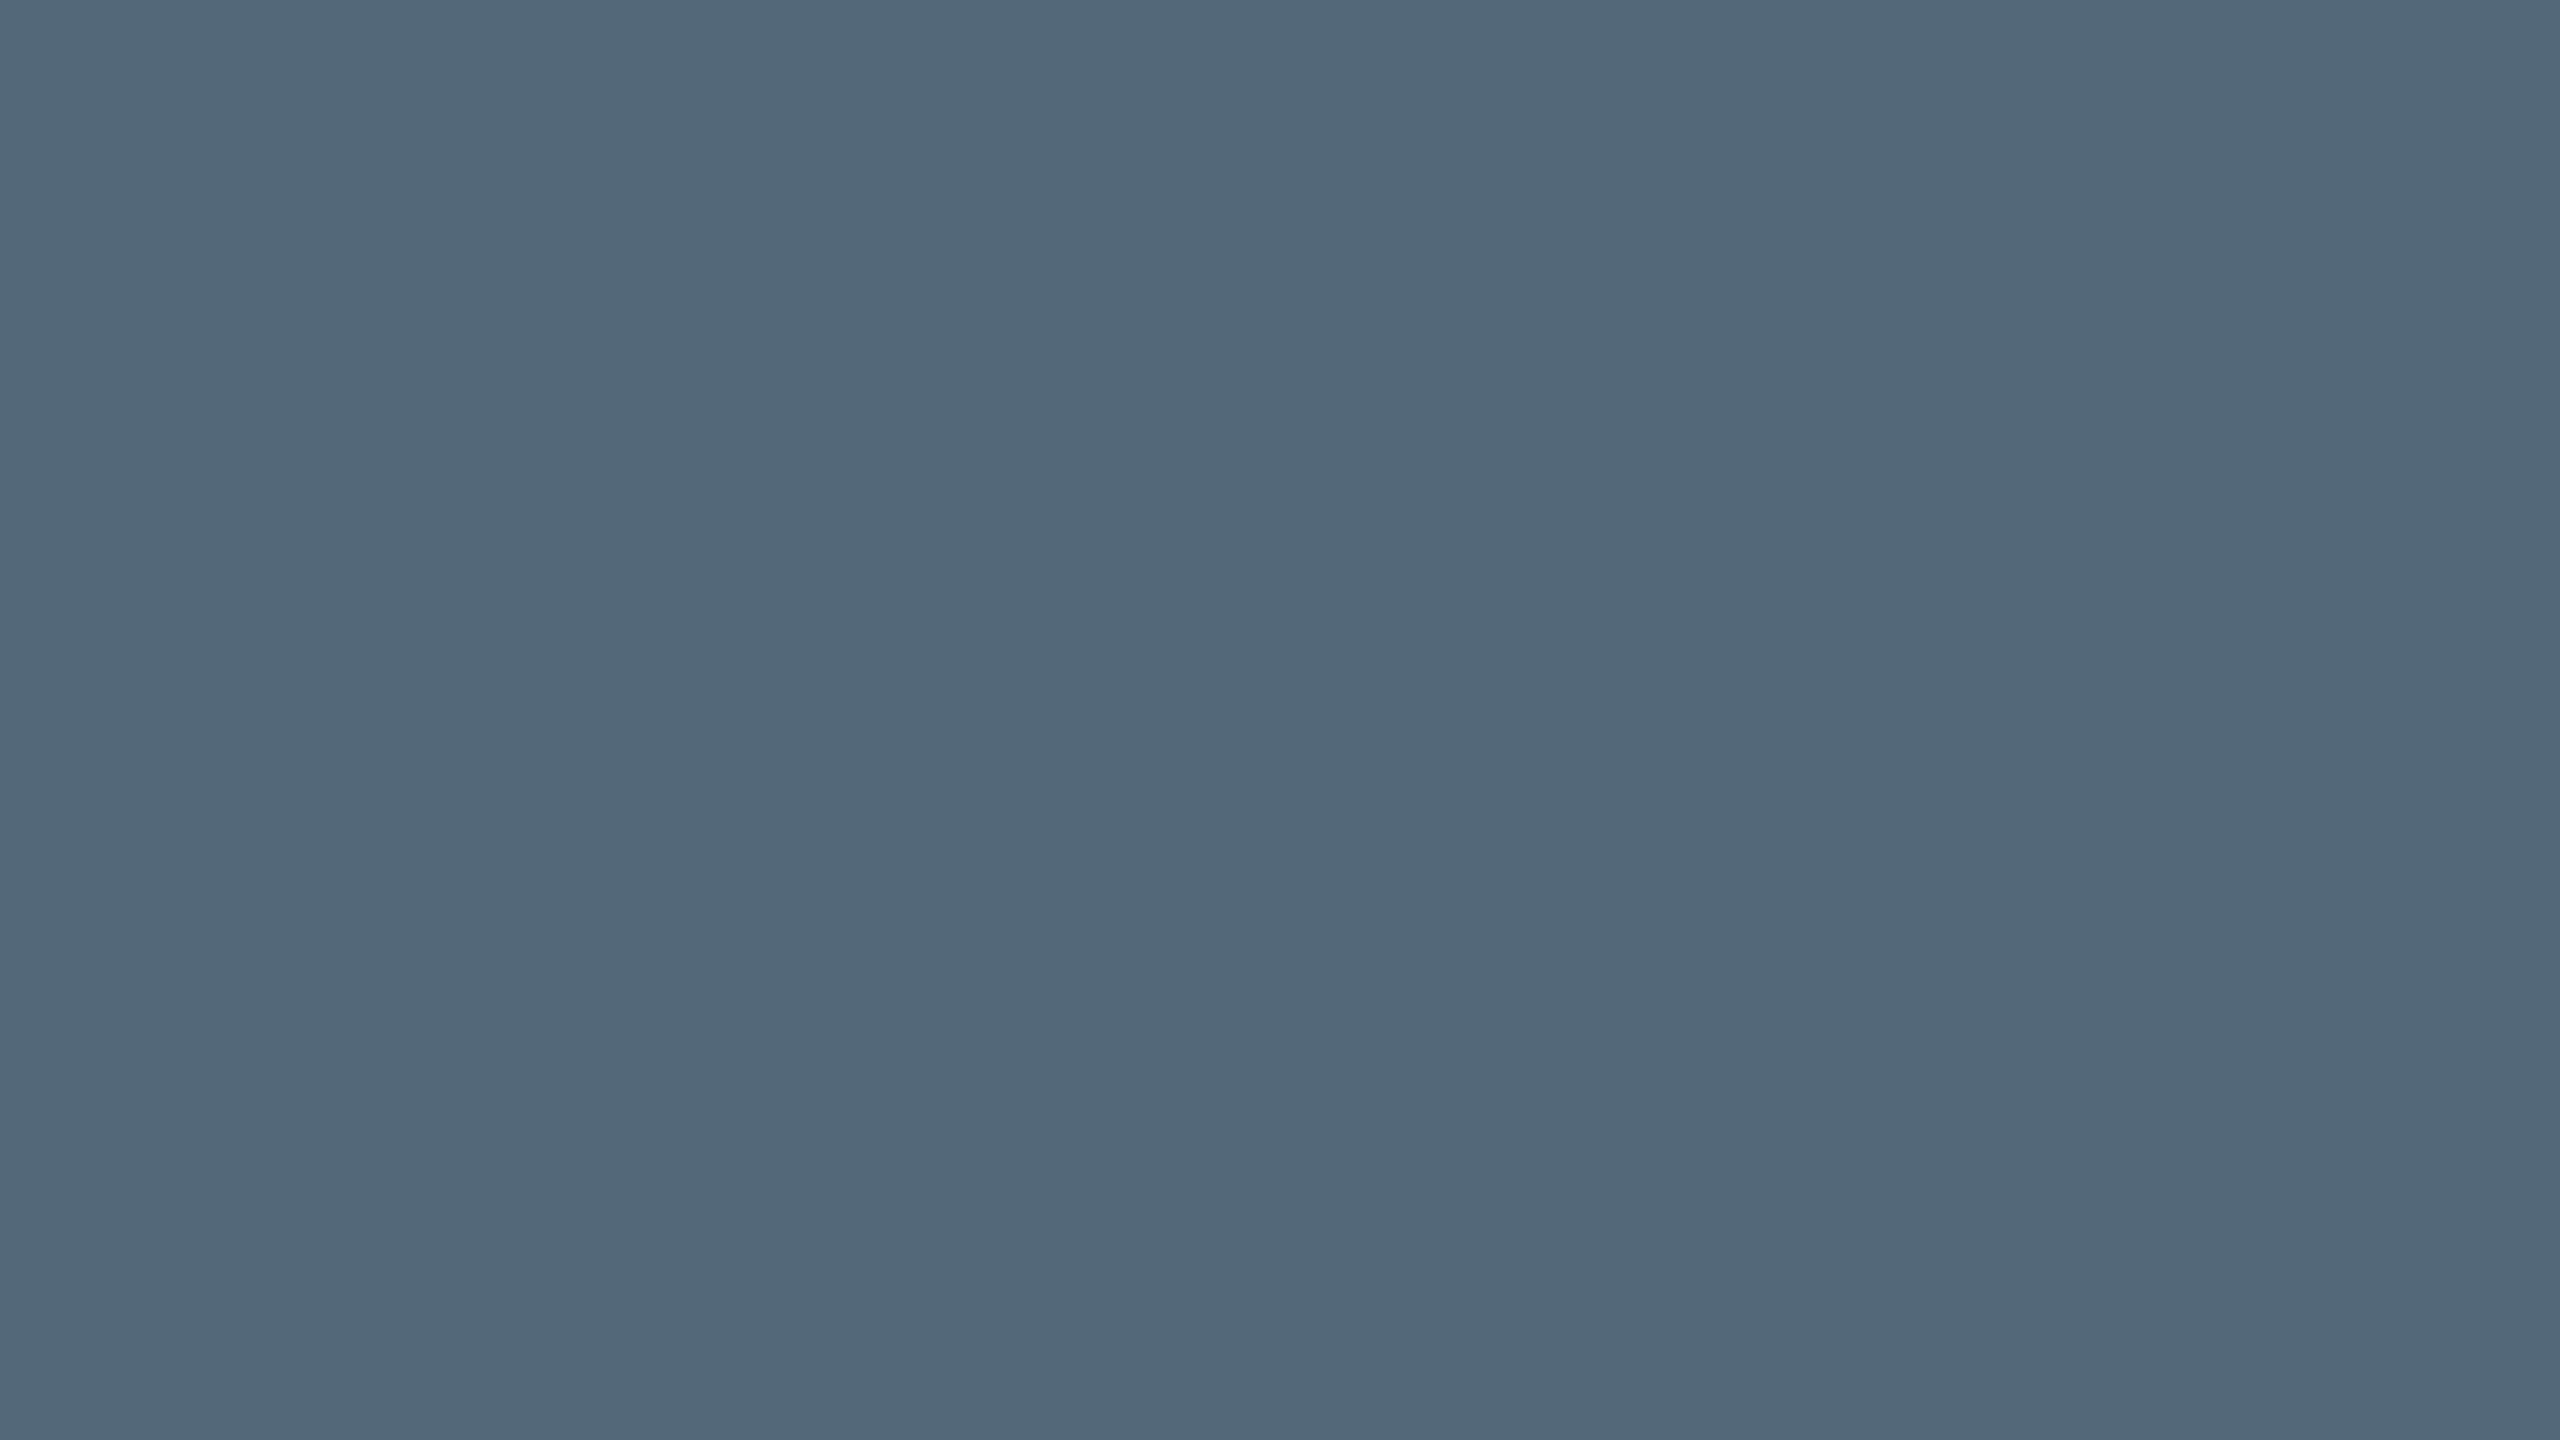 2560x1440 Paynes Grey Solid Color Background